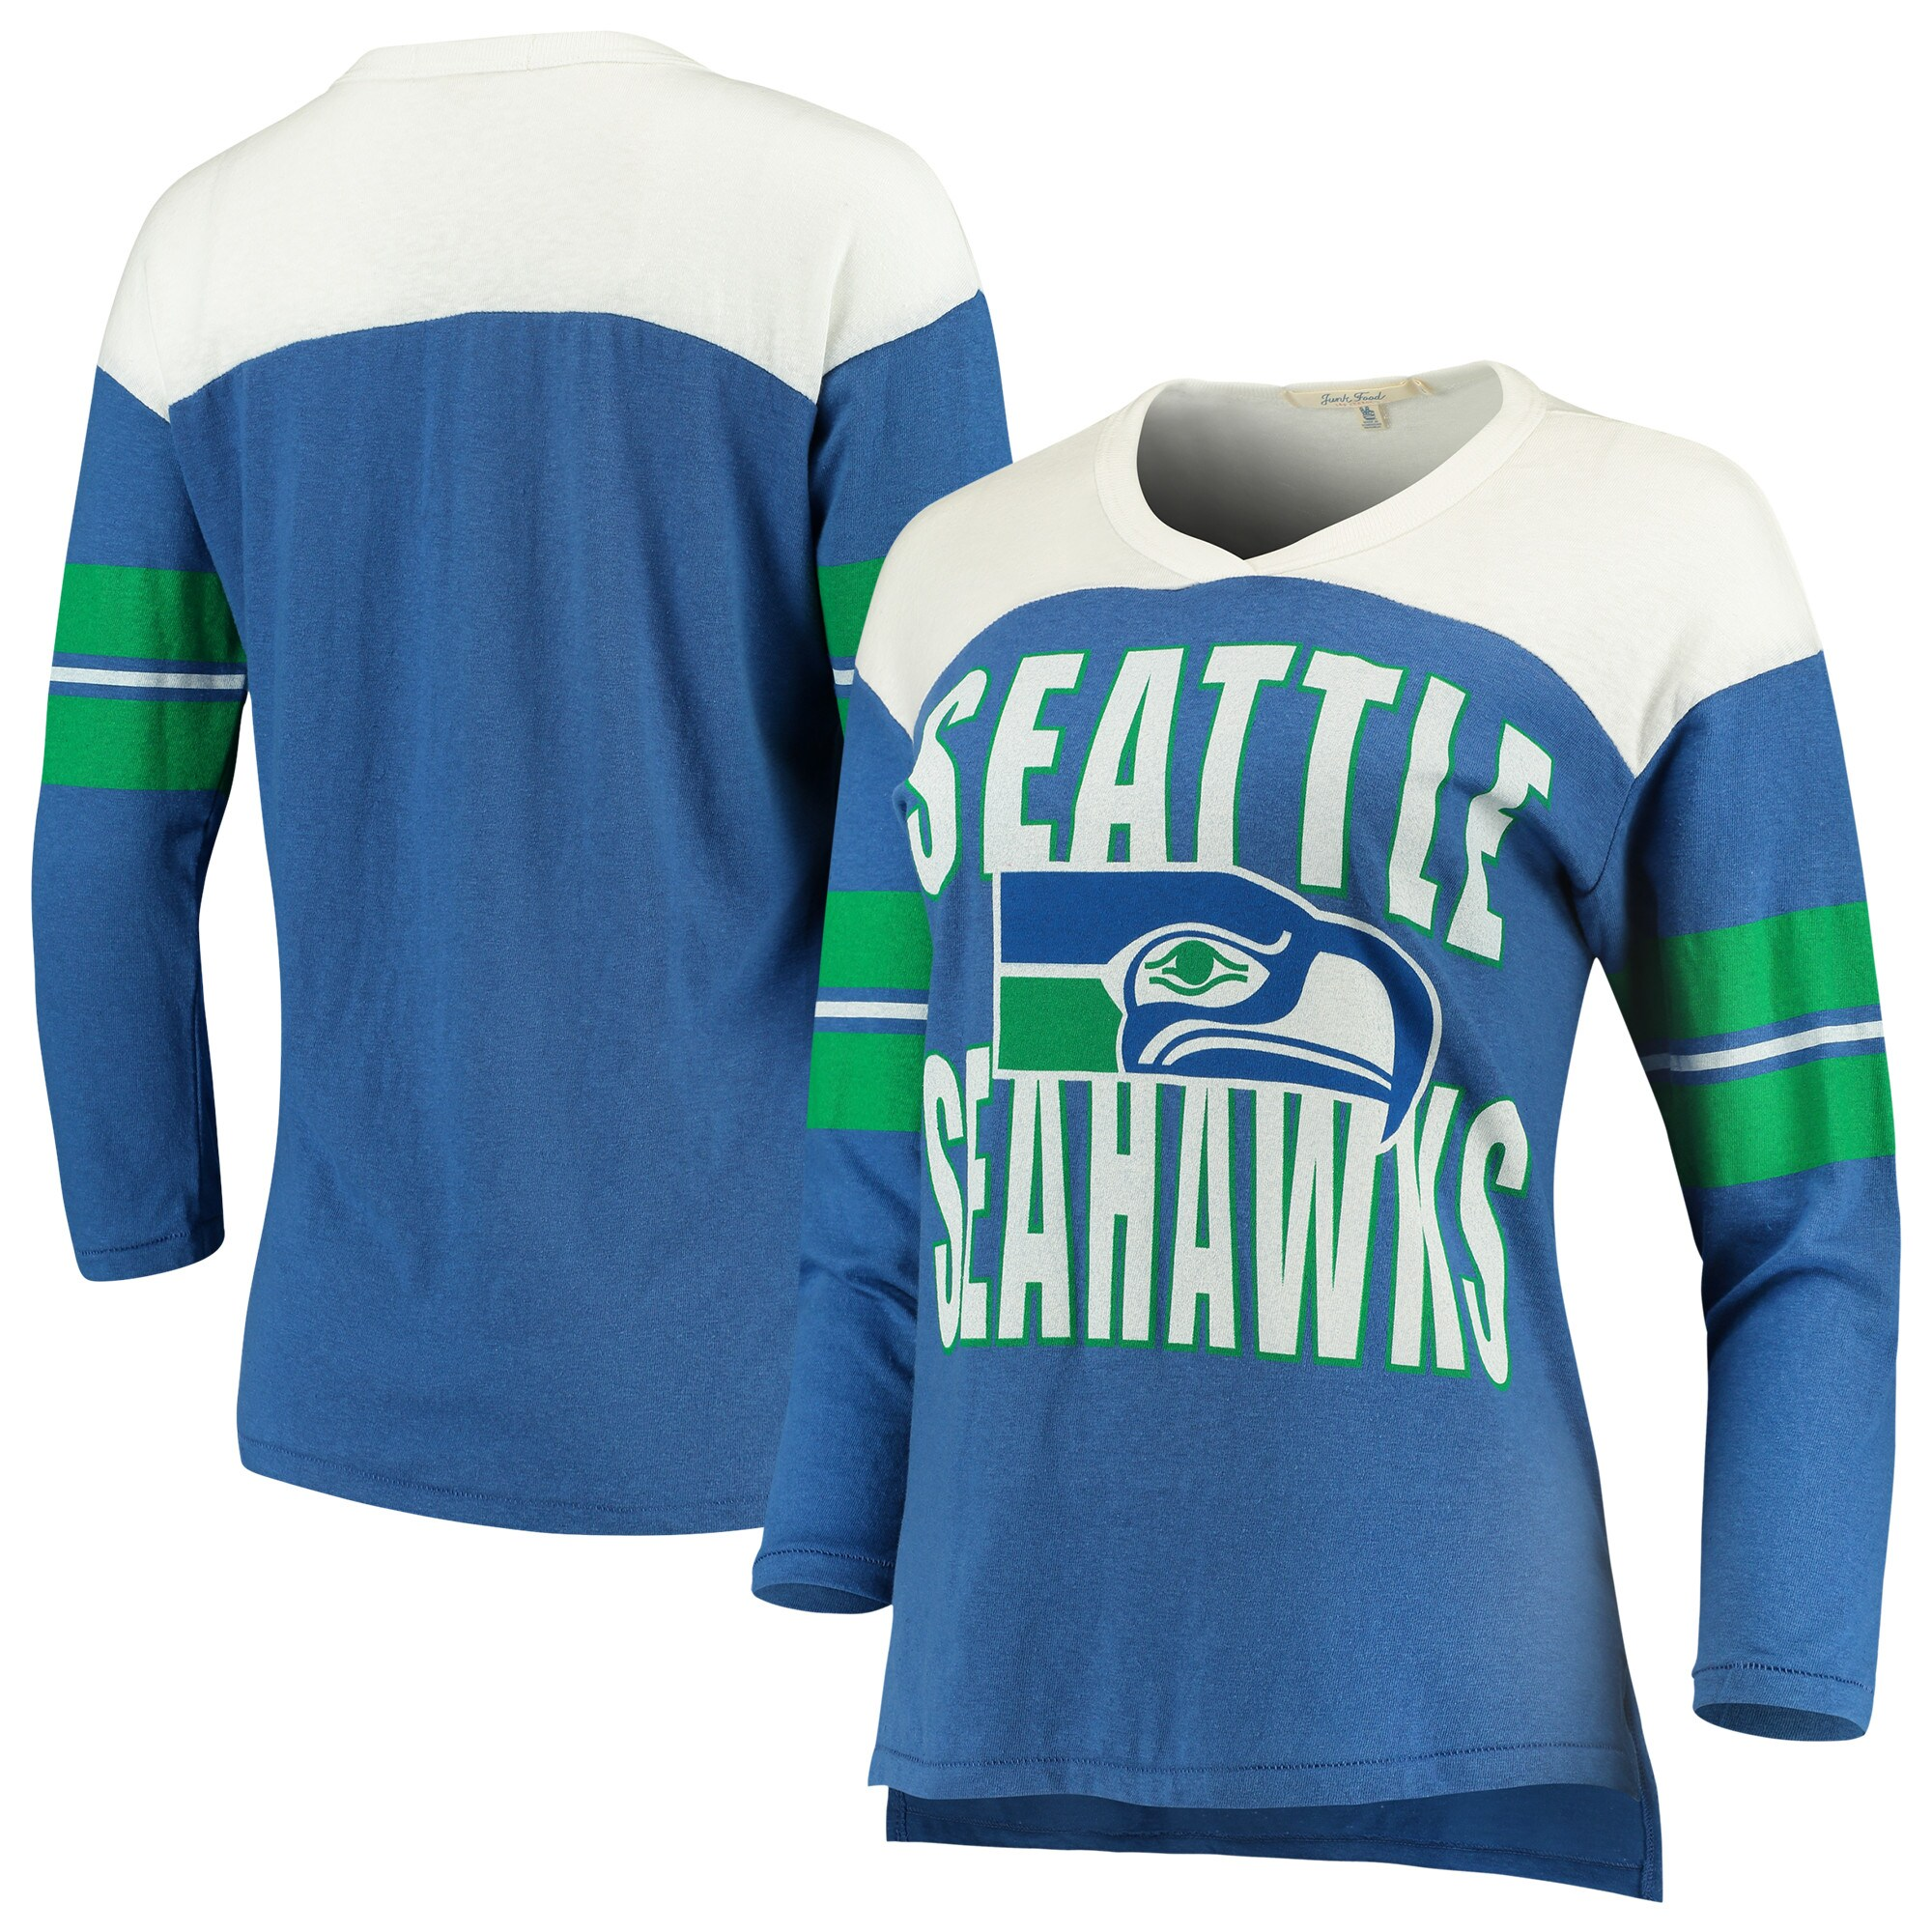 Seattle Seahawks Junk Food Women's Throwback Football Long Sleeve T-Shirt - Royal/White